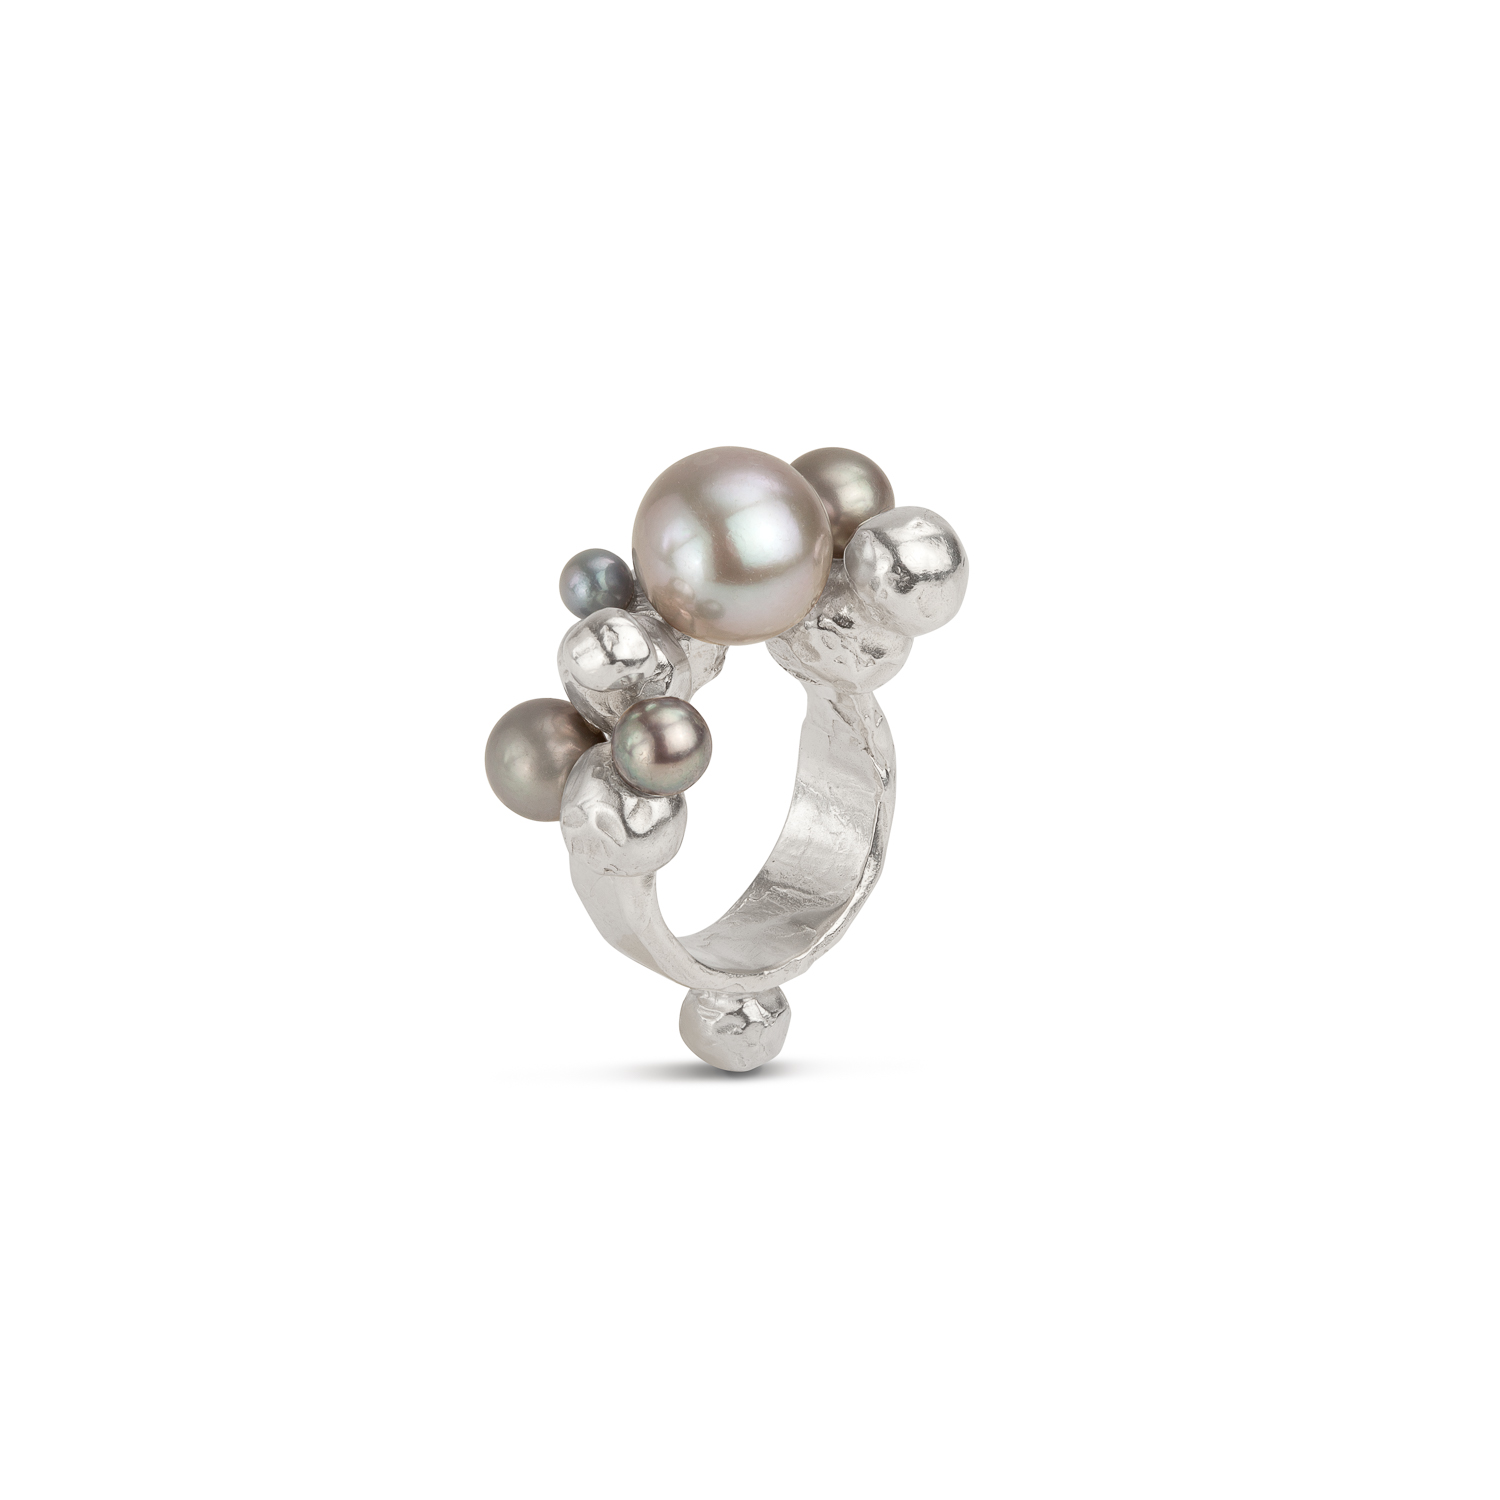 Bubble ring | sterling silver and 3 grey pearls